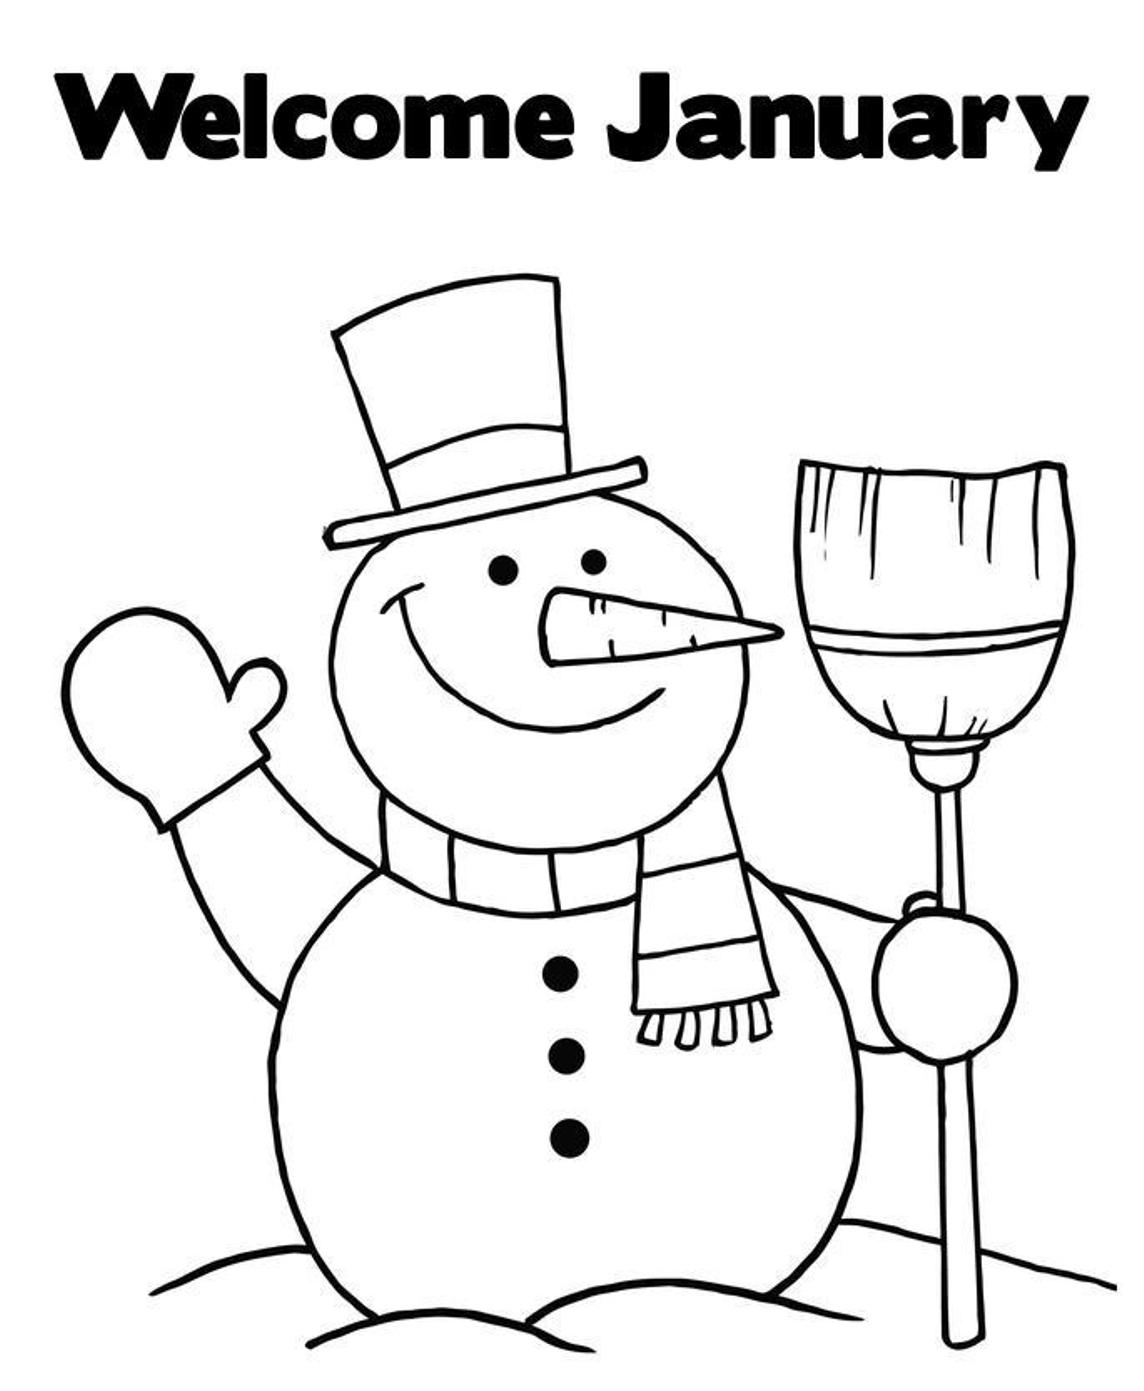 January Coloring Pages To Download And Print For Free